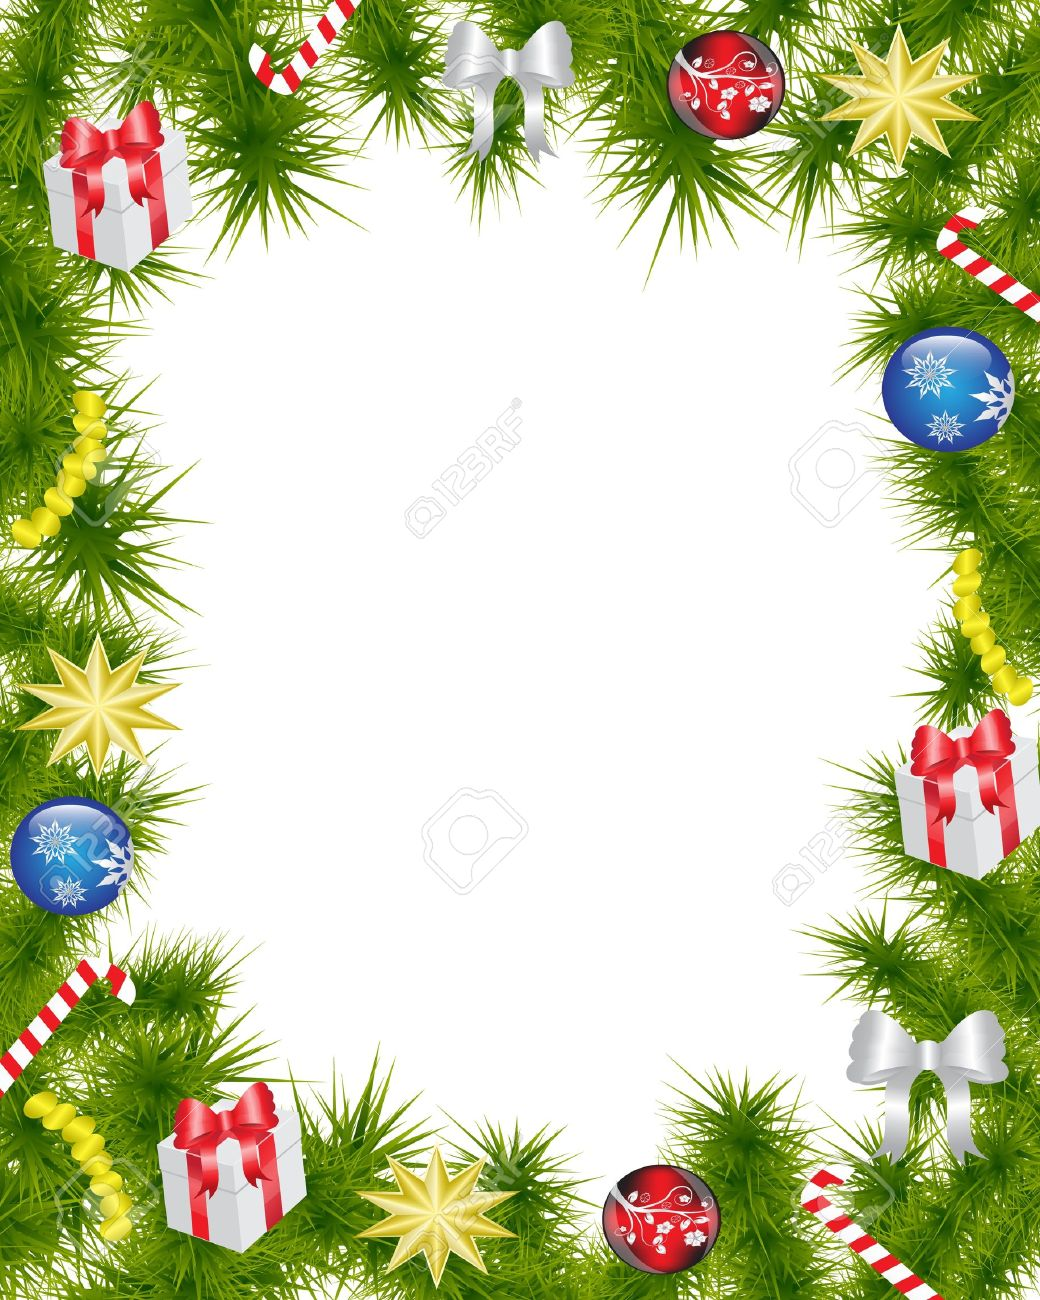 Christmas Frame Made Of Fir Branches Adorned With Christmas ...